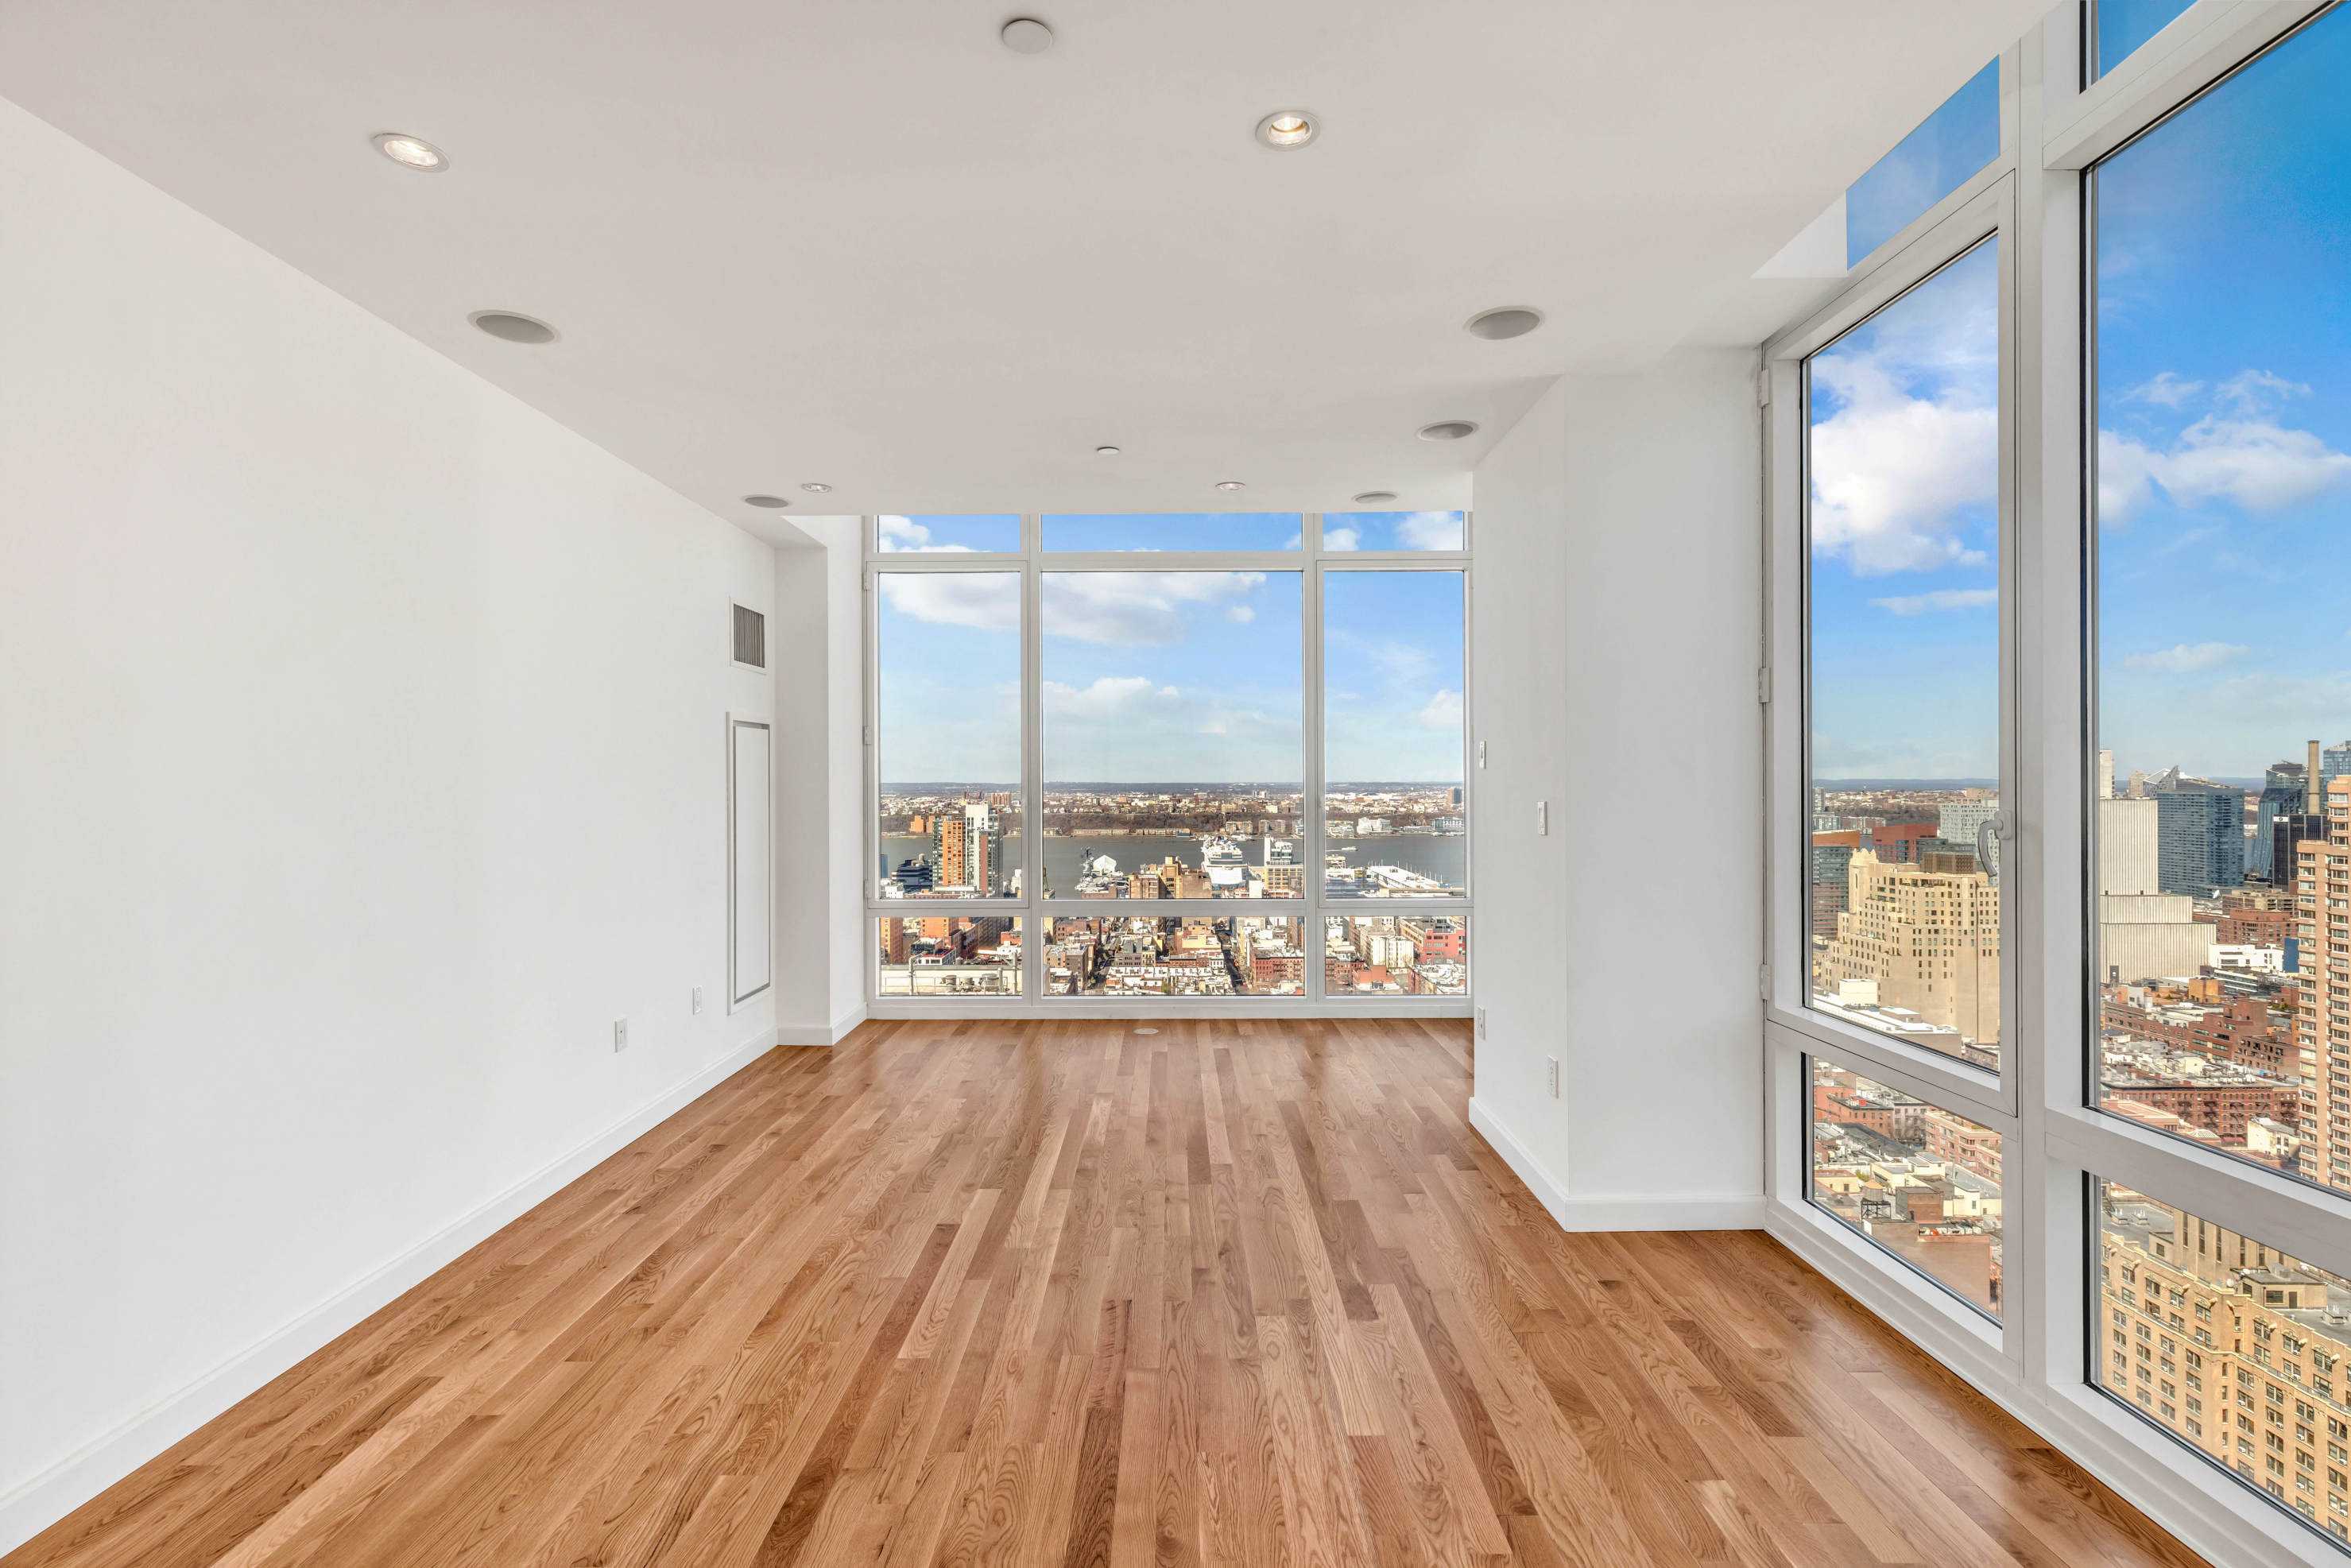 Apartment for sale at 247 West 46th Street, Apt 3601